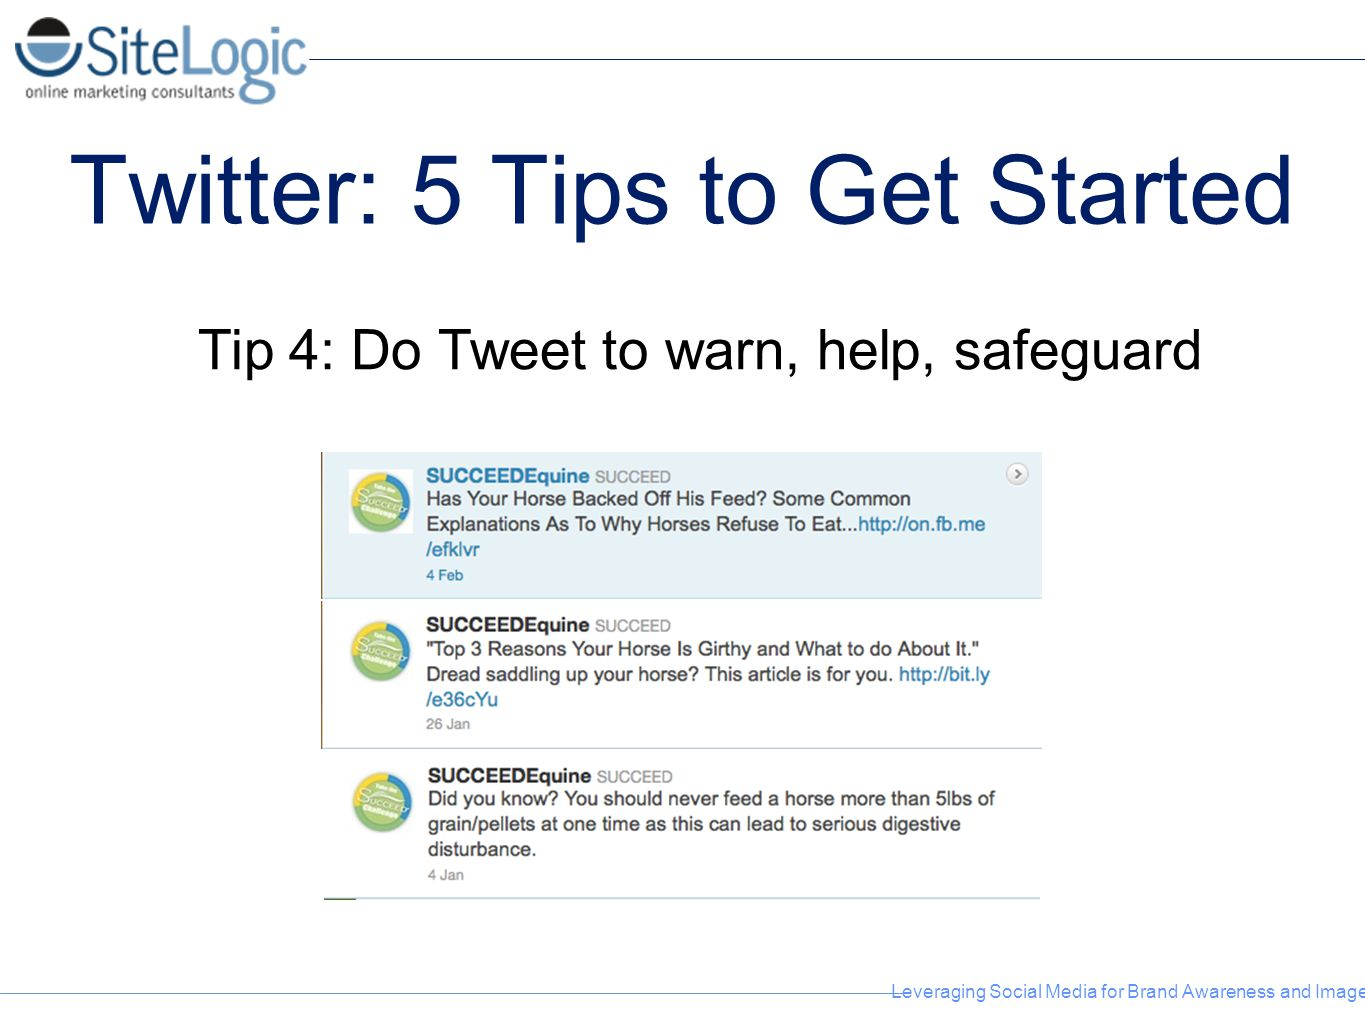 Twitter: 5 Tips to Get Started